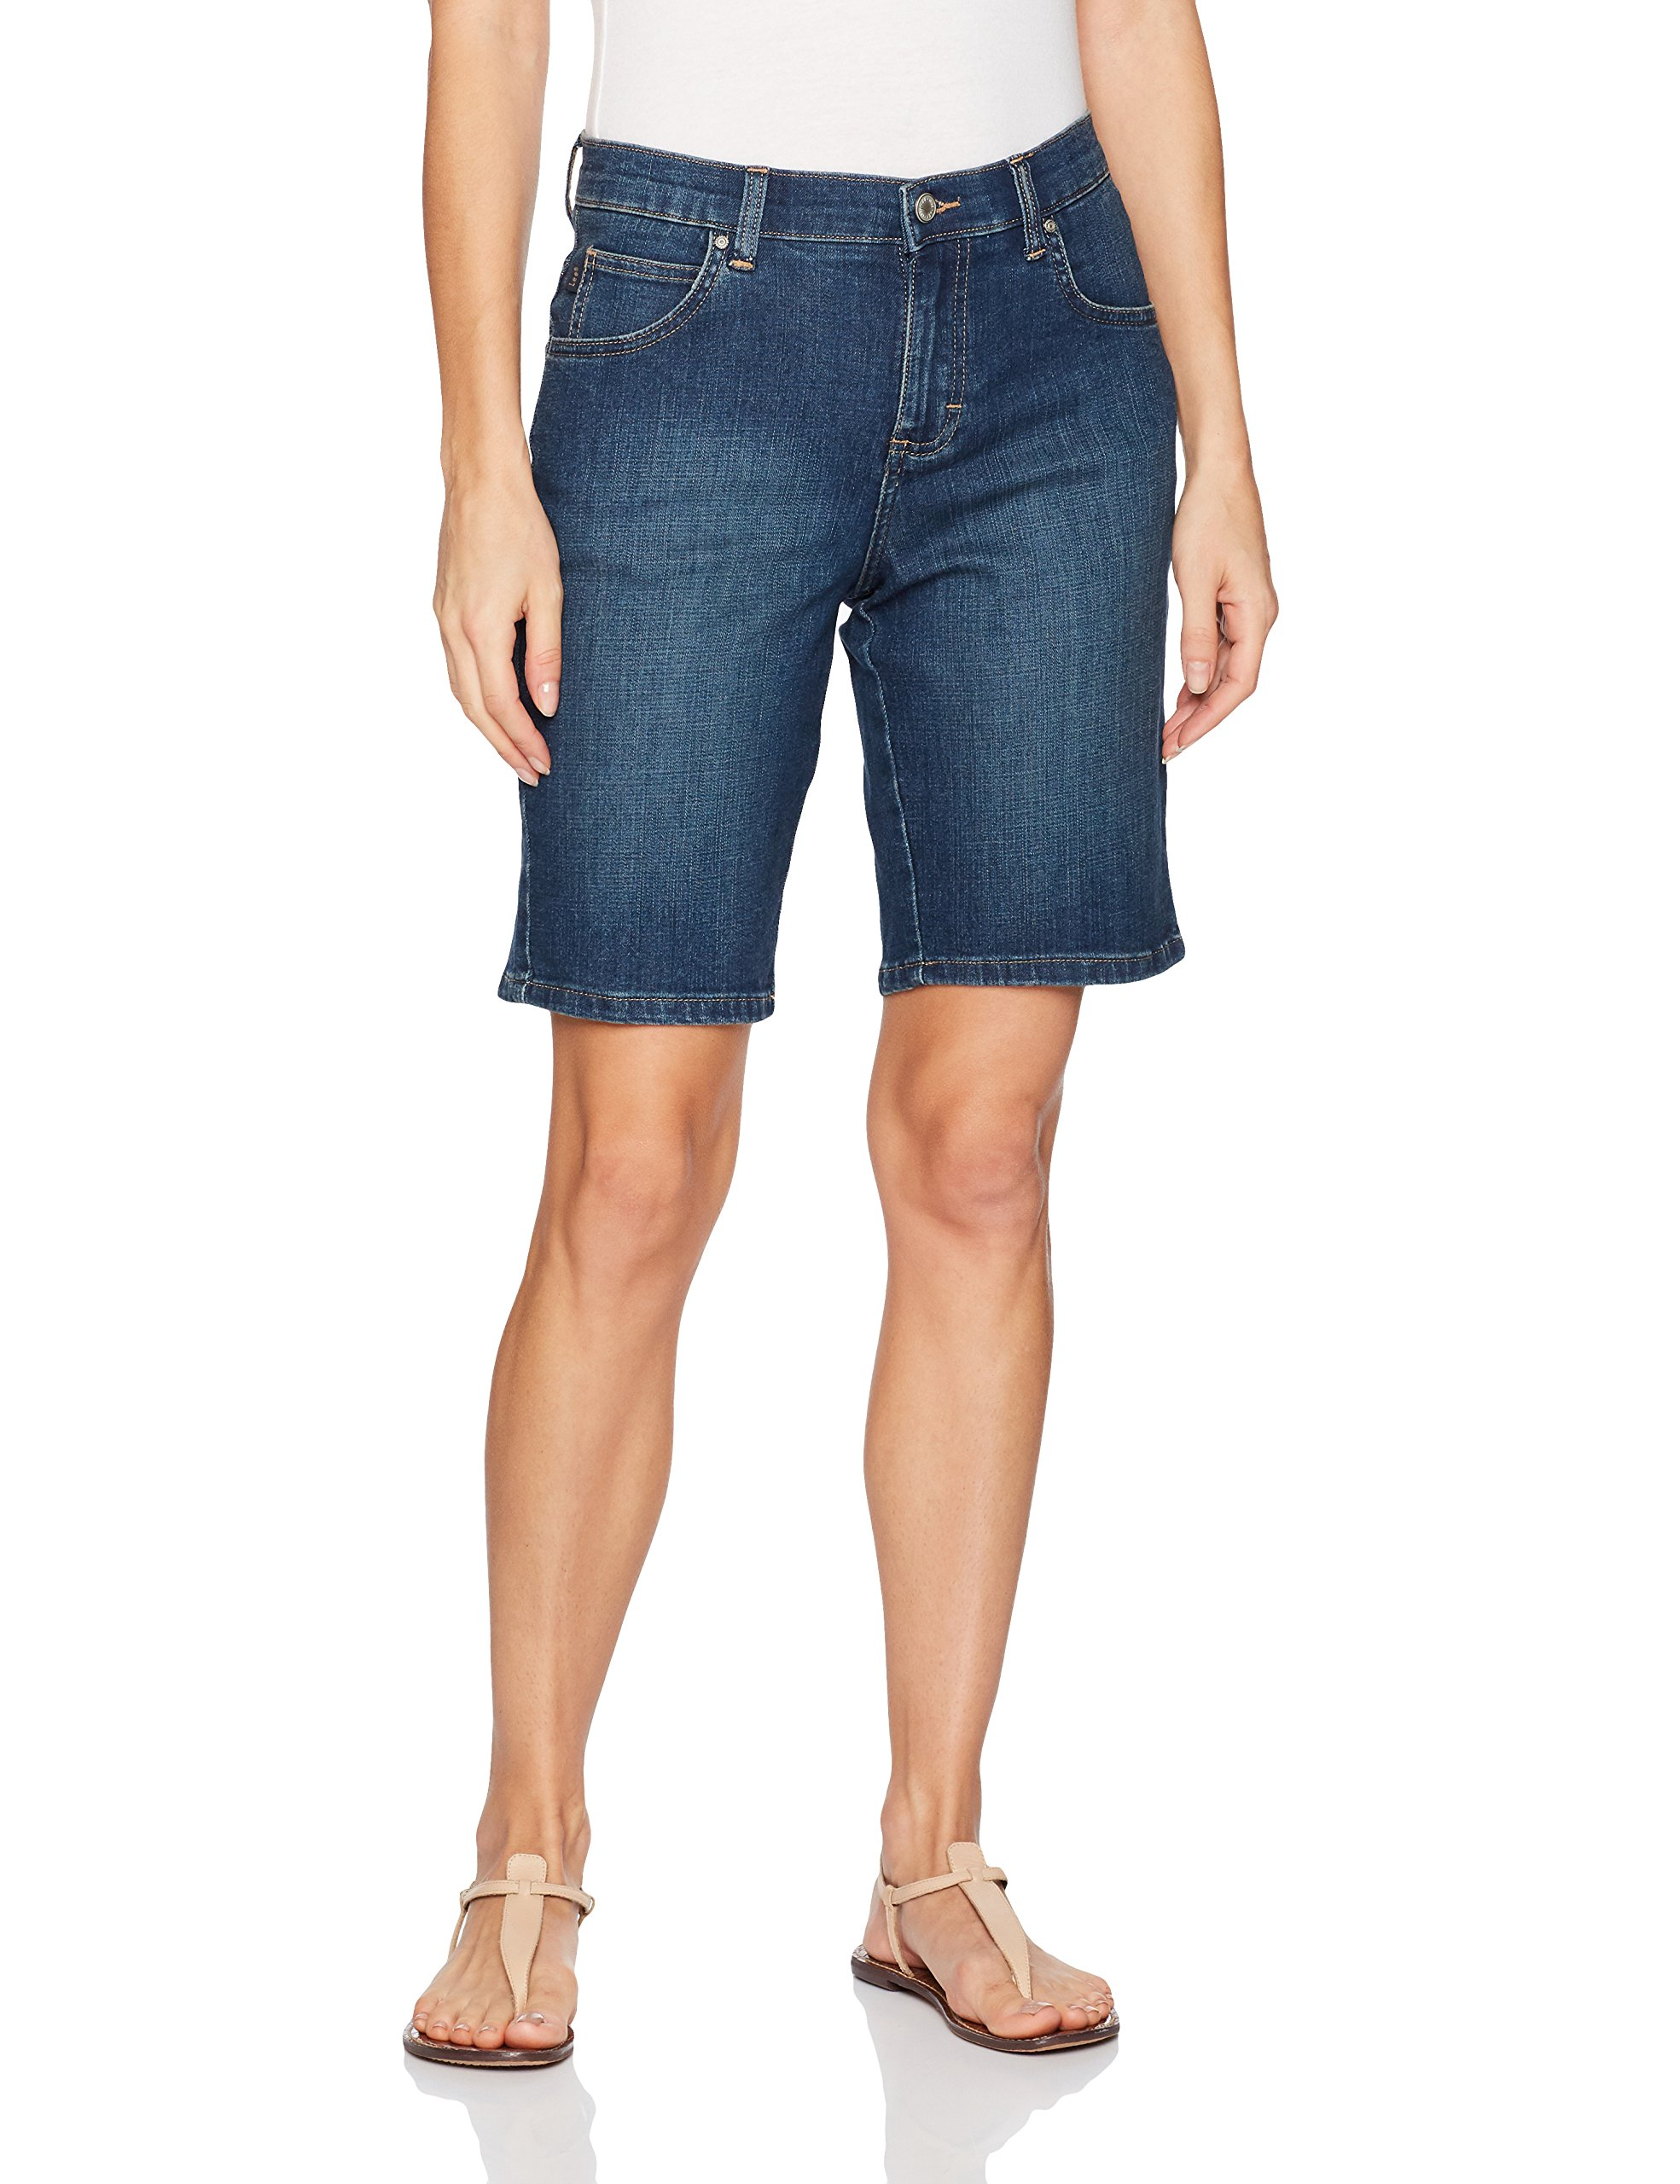 LEE Women's Relaxed-fit Bermuda Short, Journey, 14 by LEE